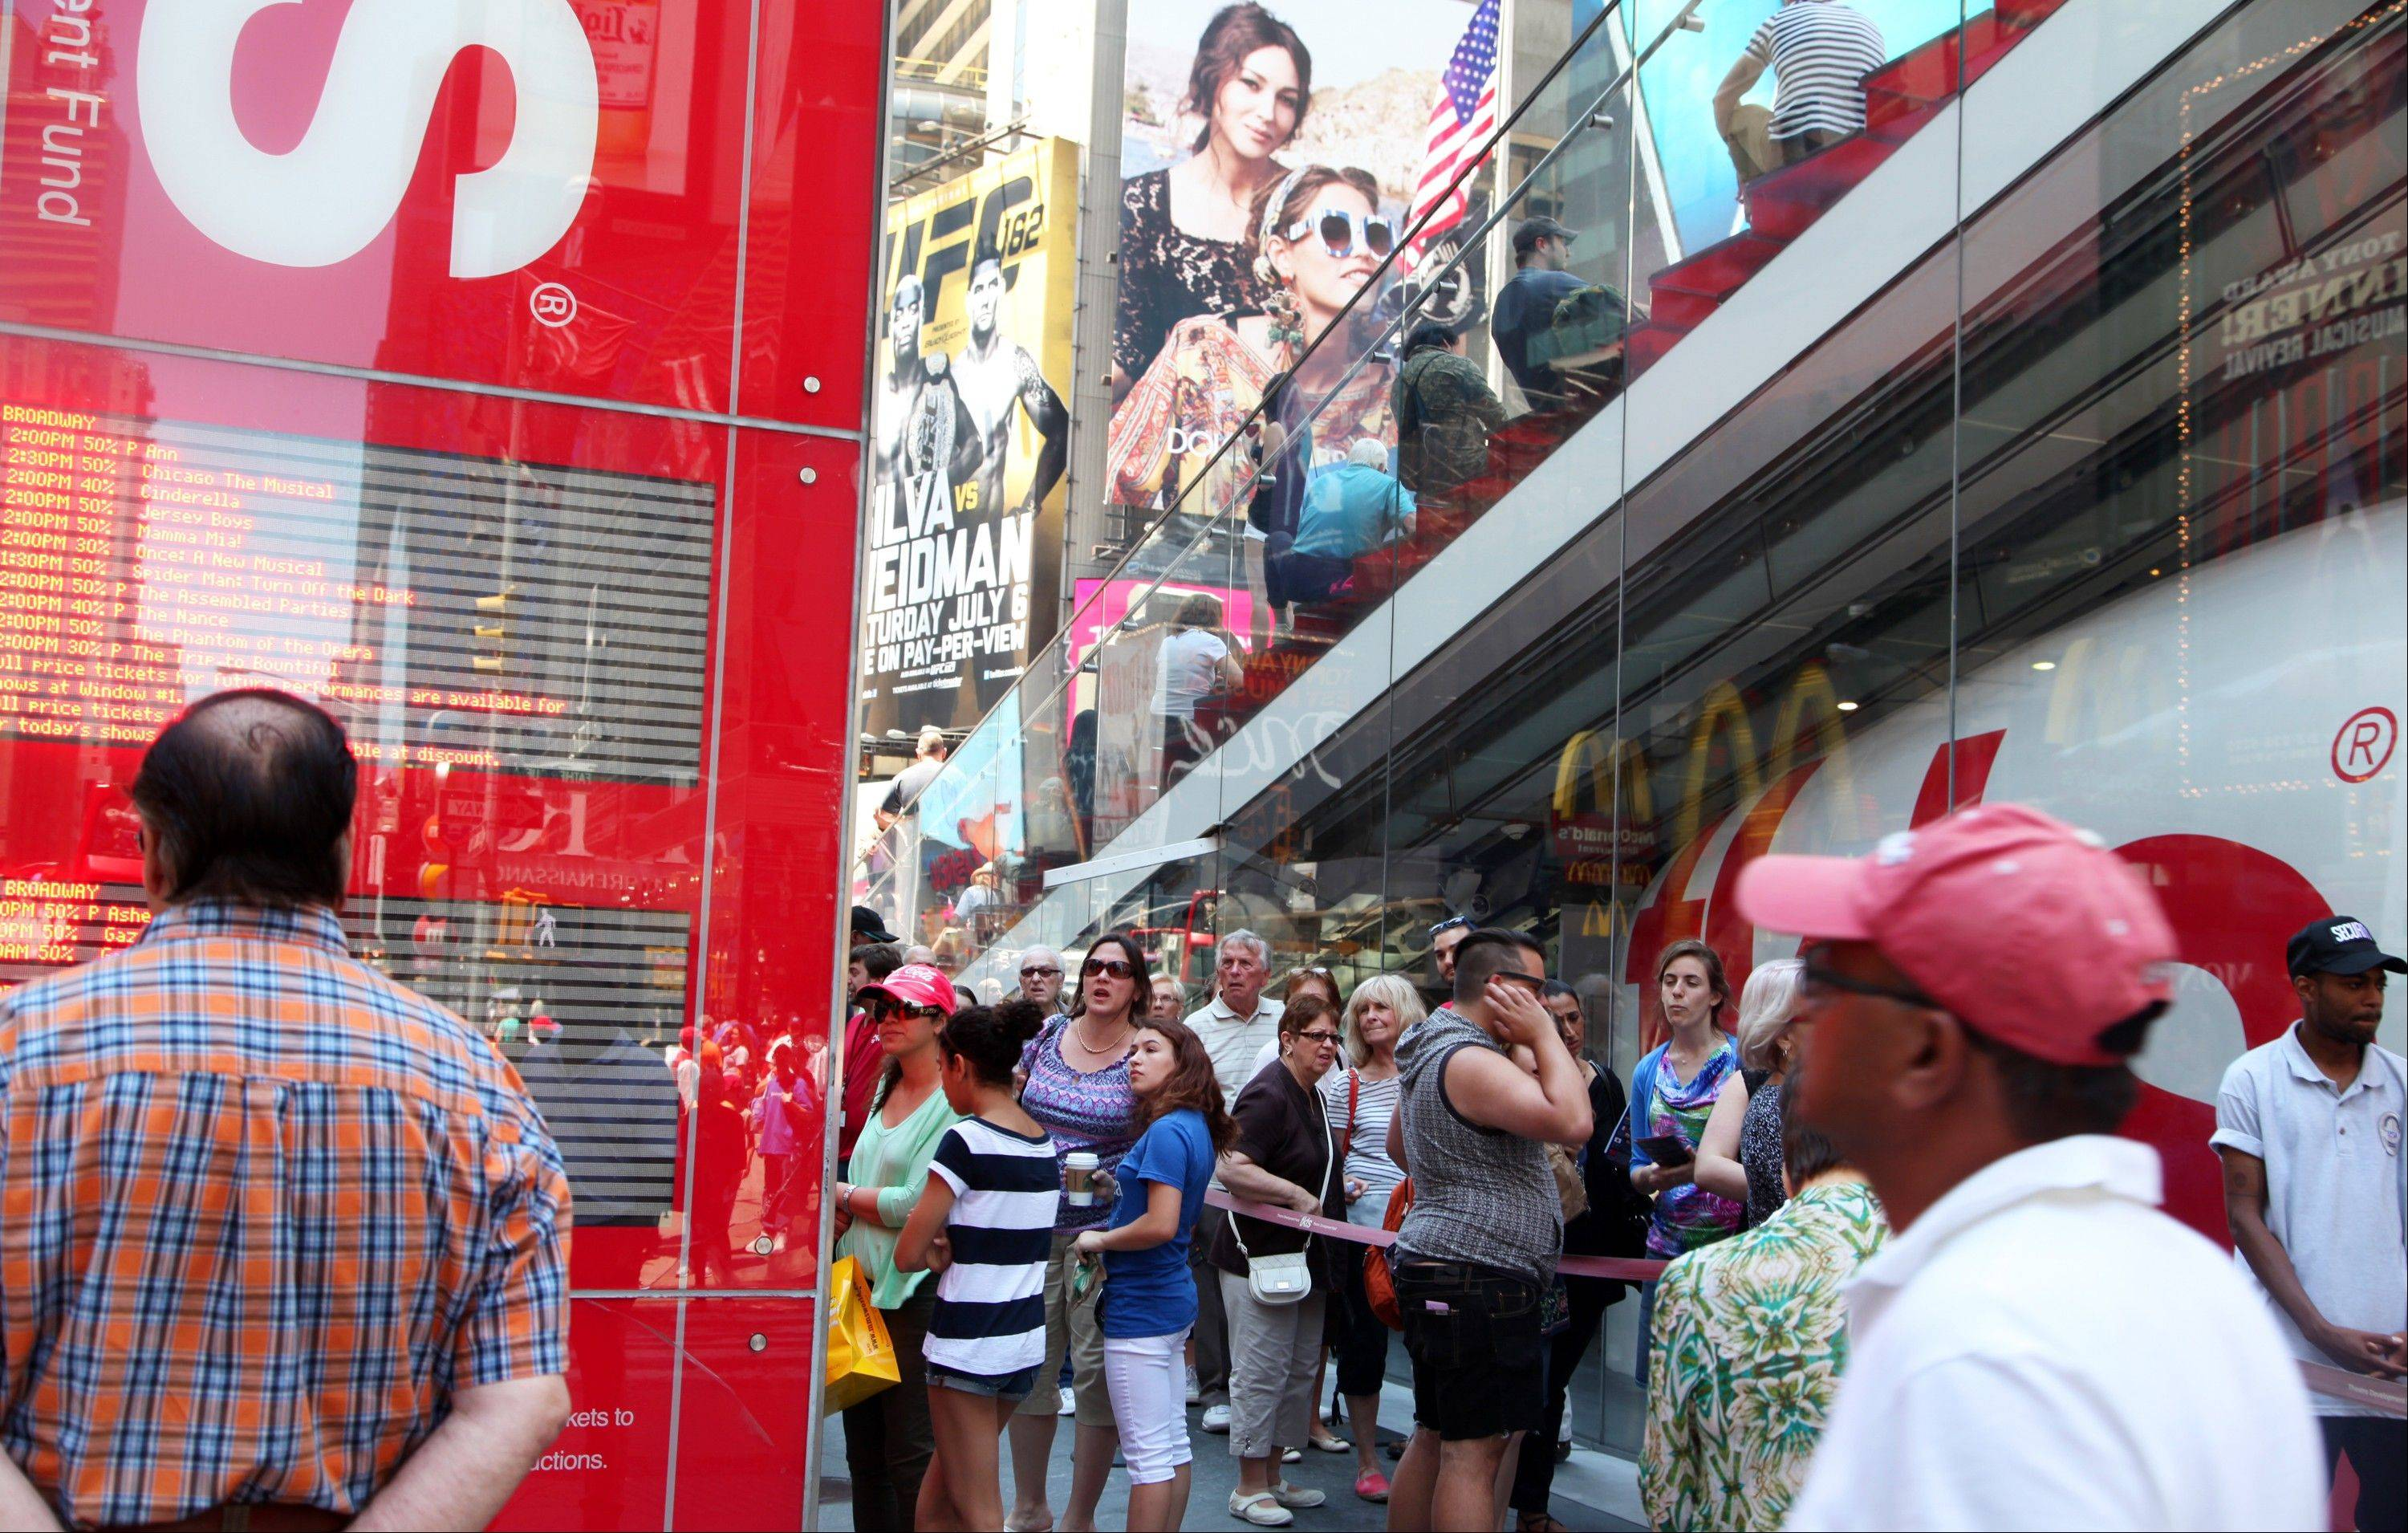 Crowds gather outside the TKTS booth in Times Square in New York. The booth, which offers same-day discount Broadway and off-Broadway tickets, turns 40 this summer.